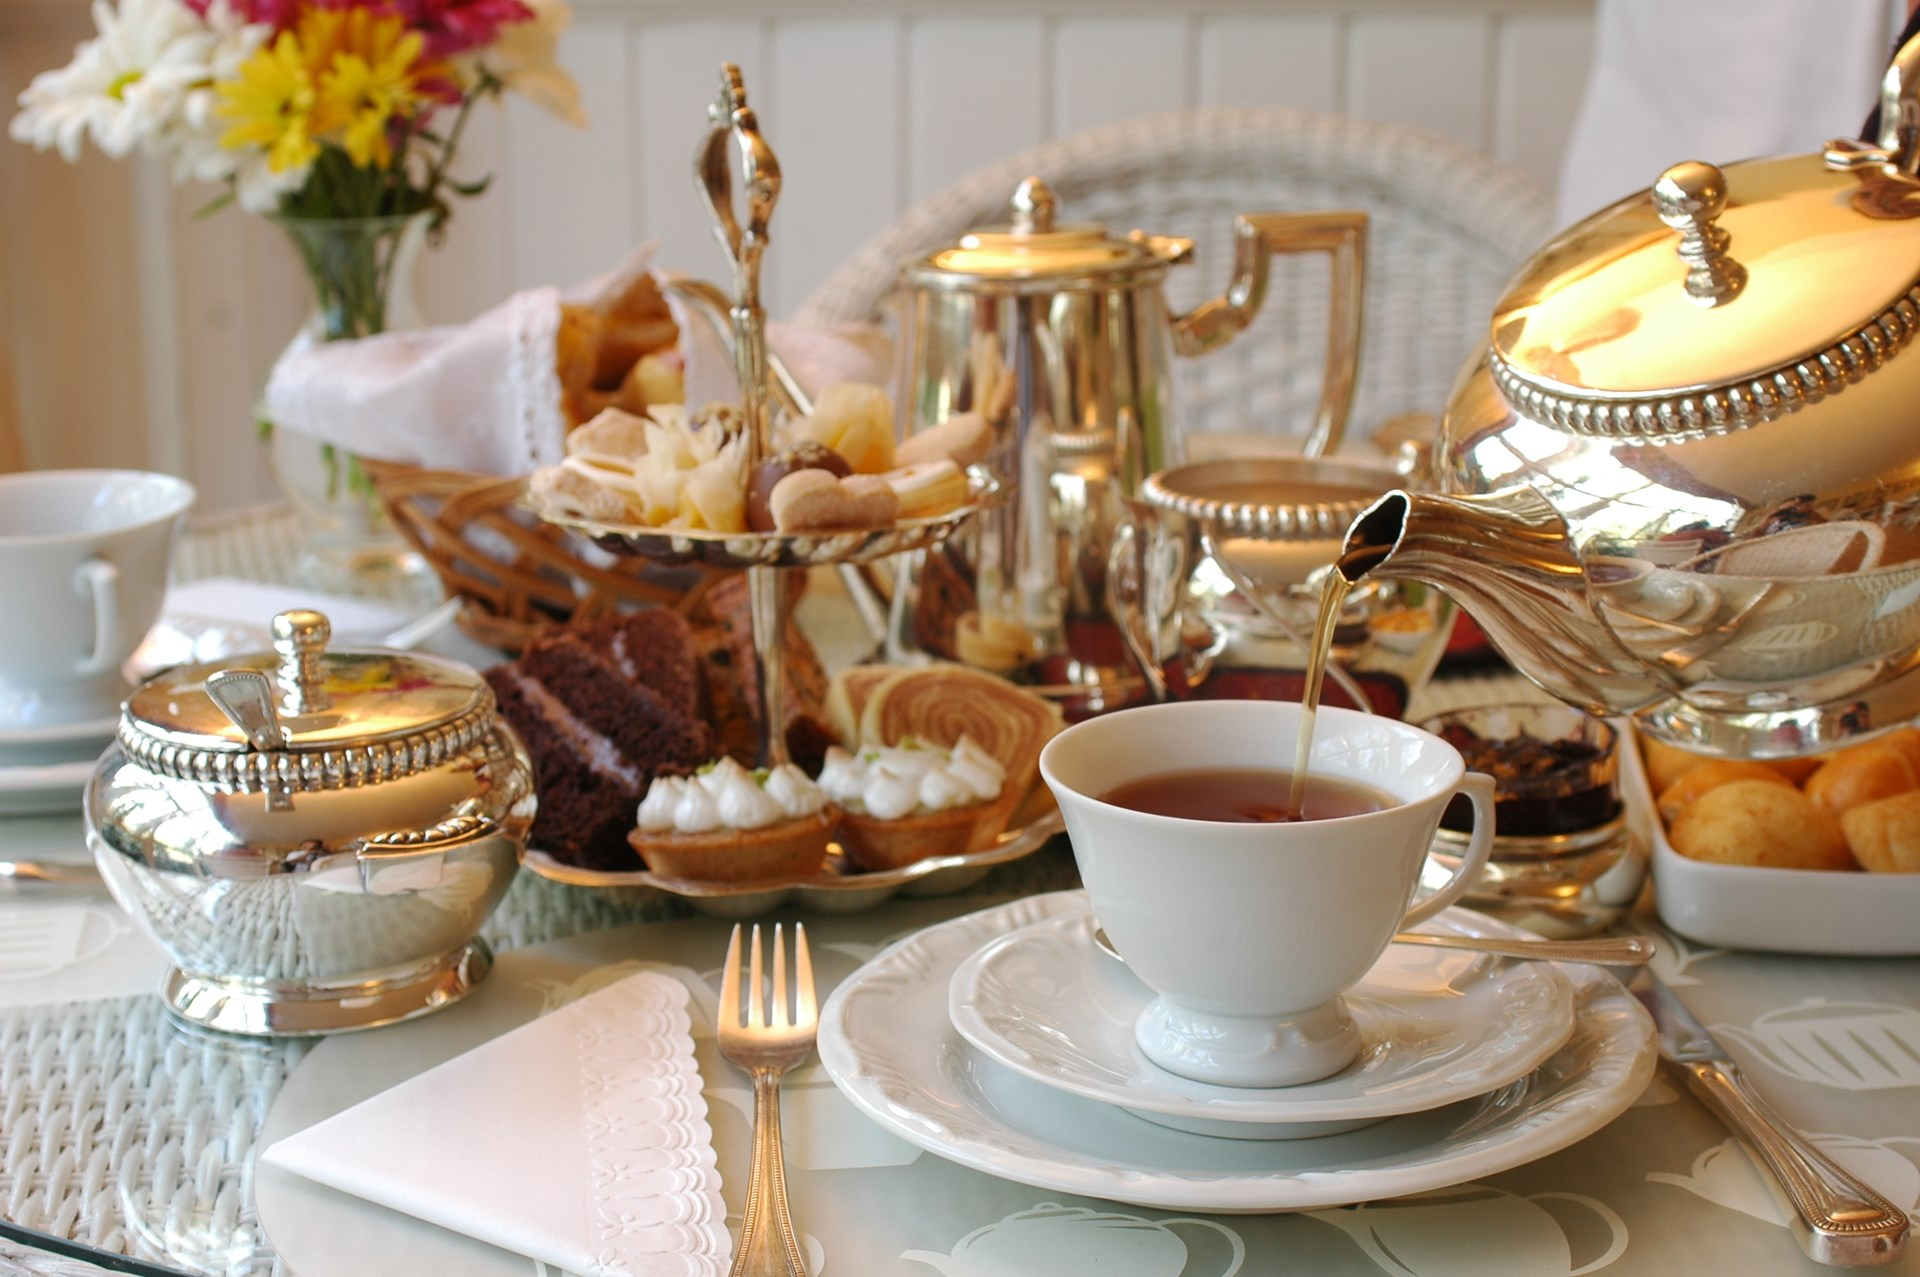 Where to Find the Best Afternoon Tea in London